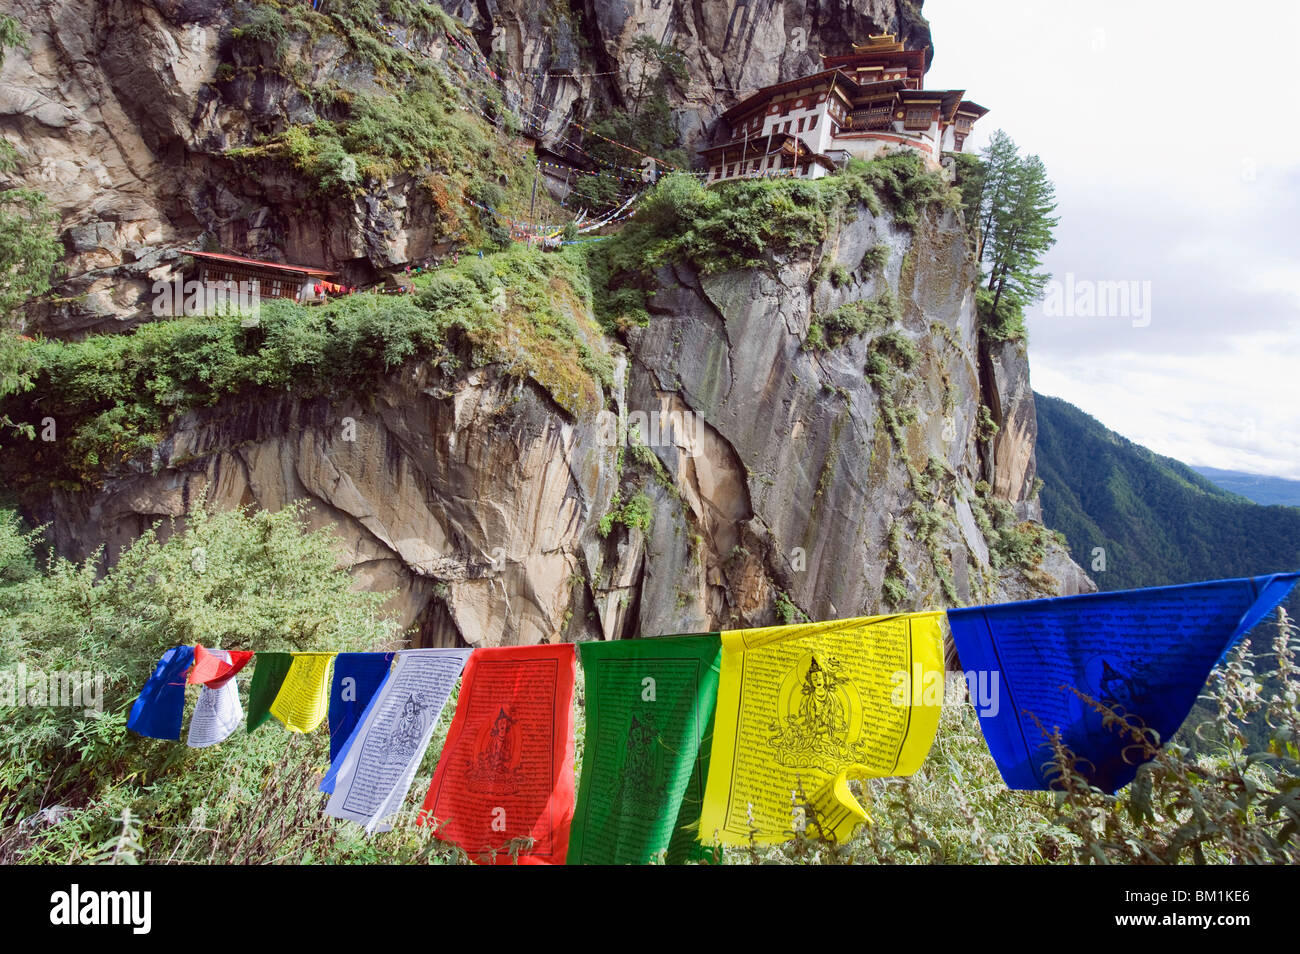 Prayer flags at the Tigers Nest (Taktsang Goemba), Paro Valley, Bhutan, Asia - Stock Image